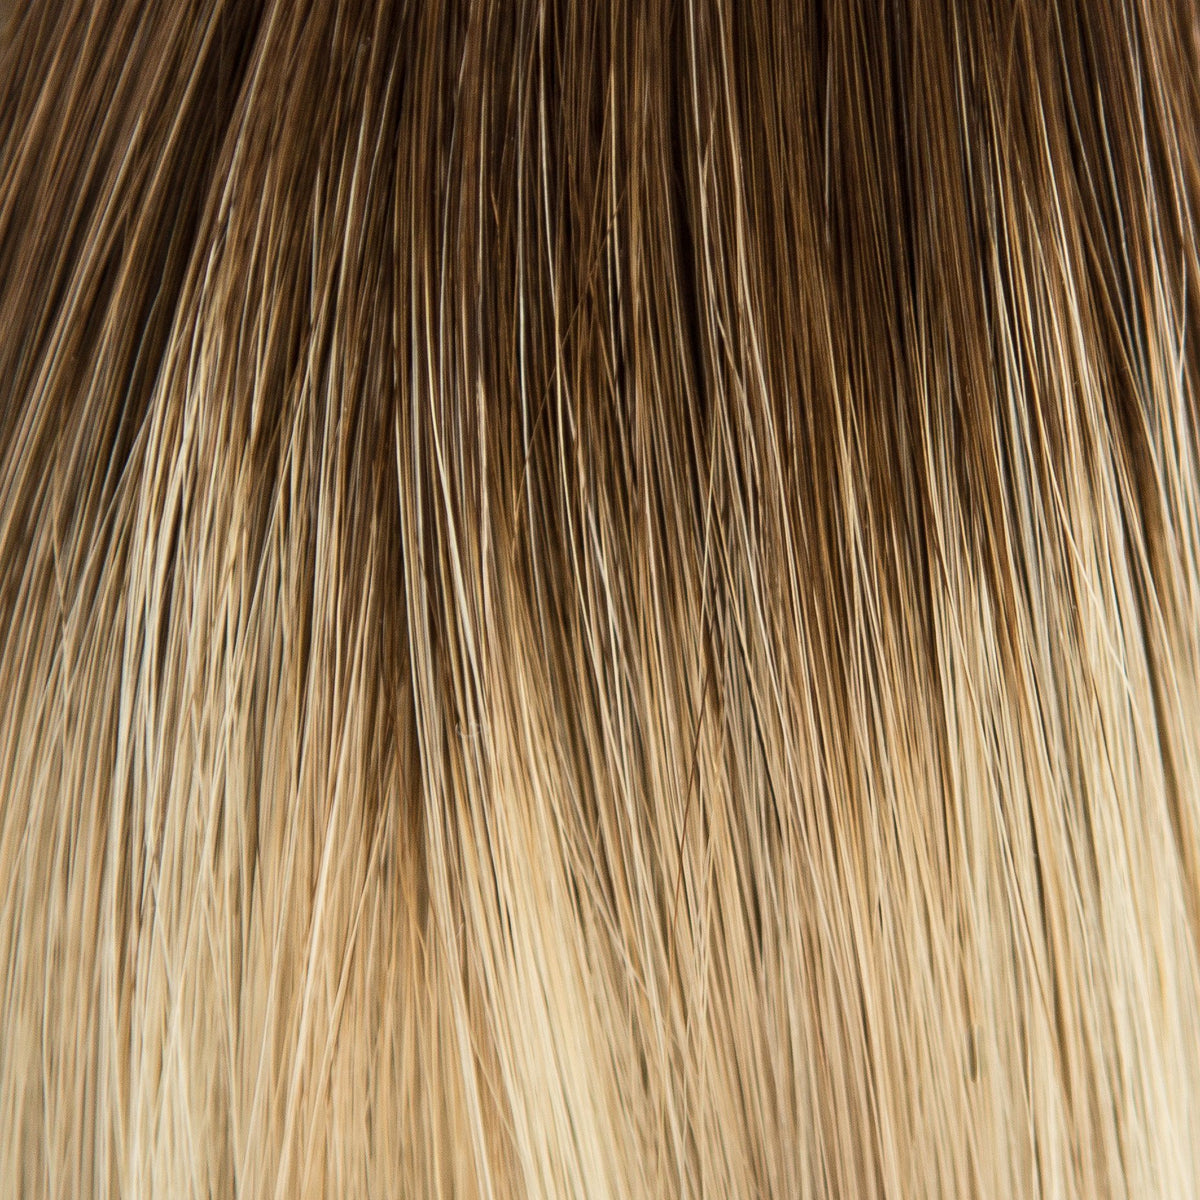 Machine_Sewn_Weft - Laced Hair Machine Sewn Weft Extensions Rooted #2/18/22